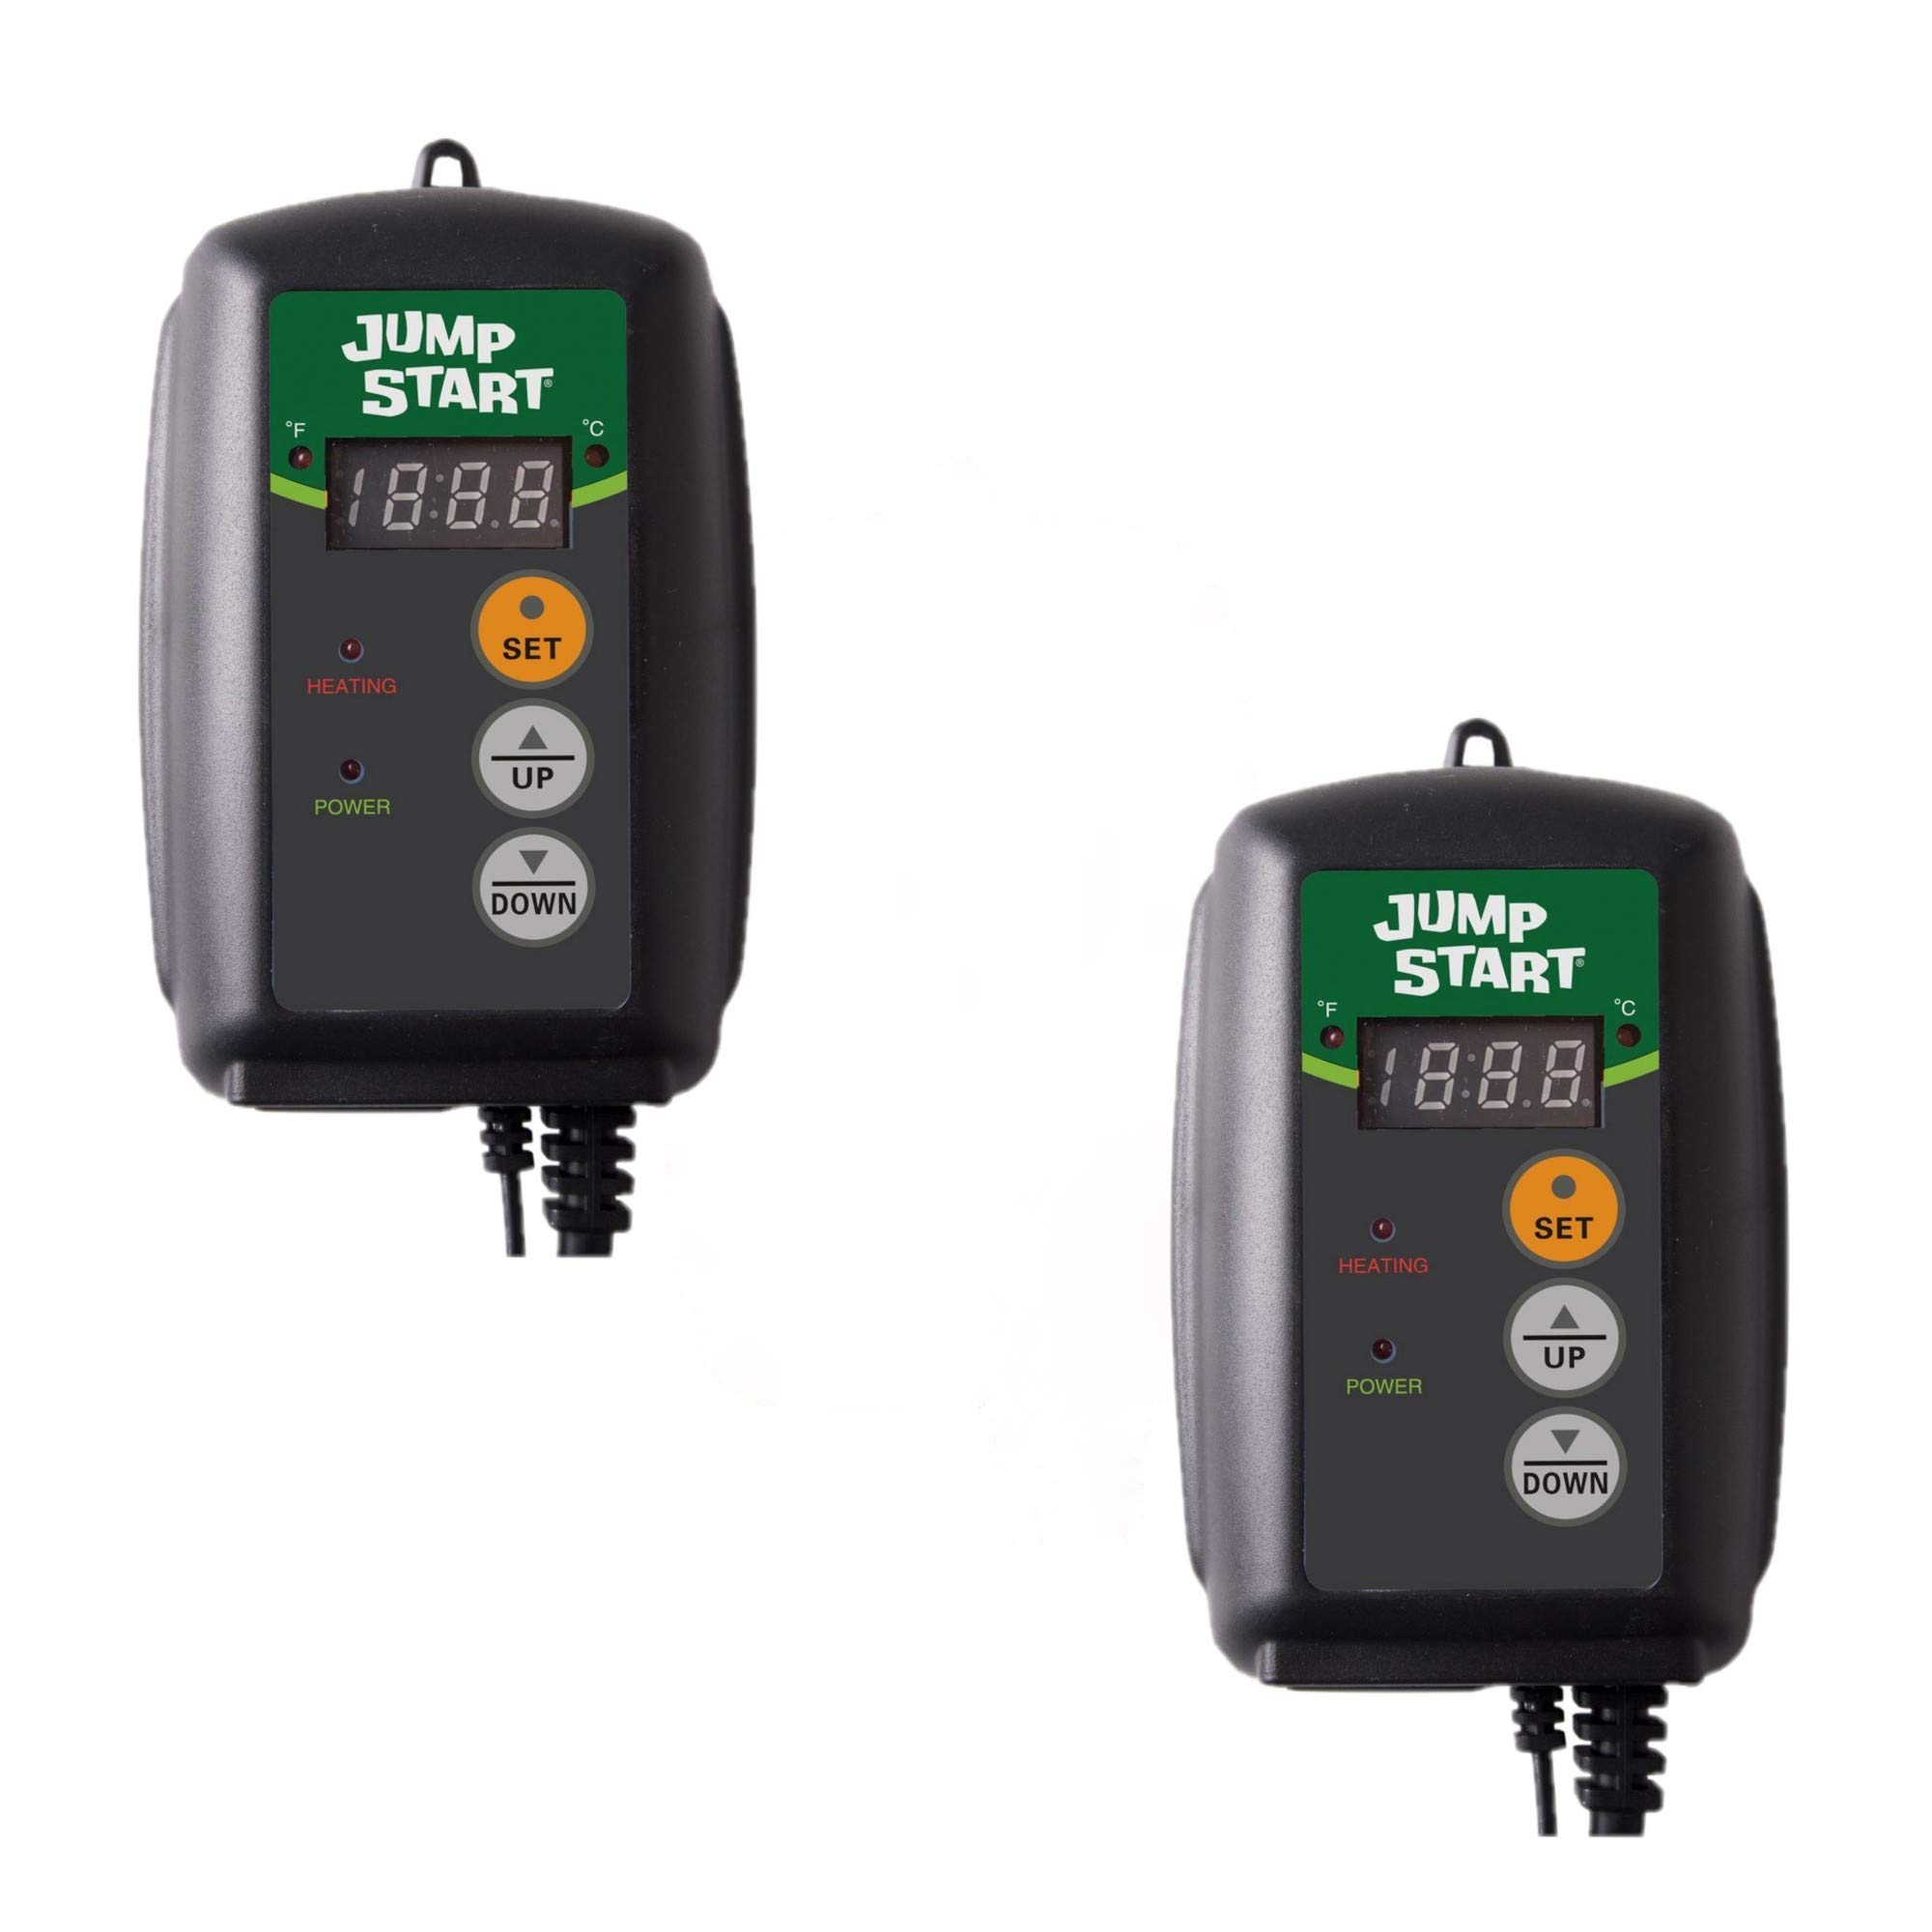 Hydrofarm Germination, Reptiles and Brewing Jump Start MTPRTC Digital Controller Thermostat for Heat Mats, Seed Ge, 9-by-19-1/2-Inch (2 Pack) (2) by Hydrofarm